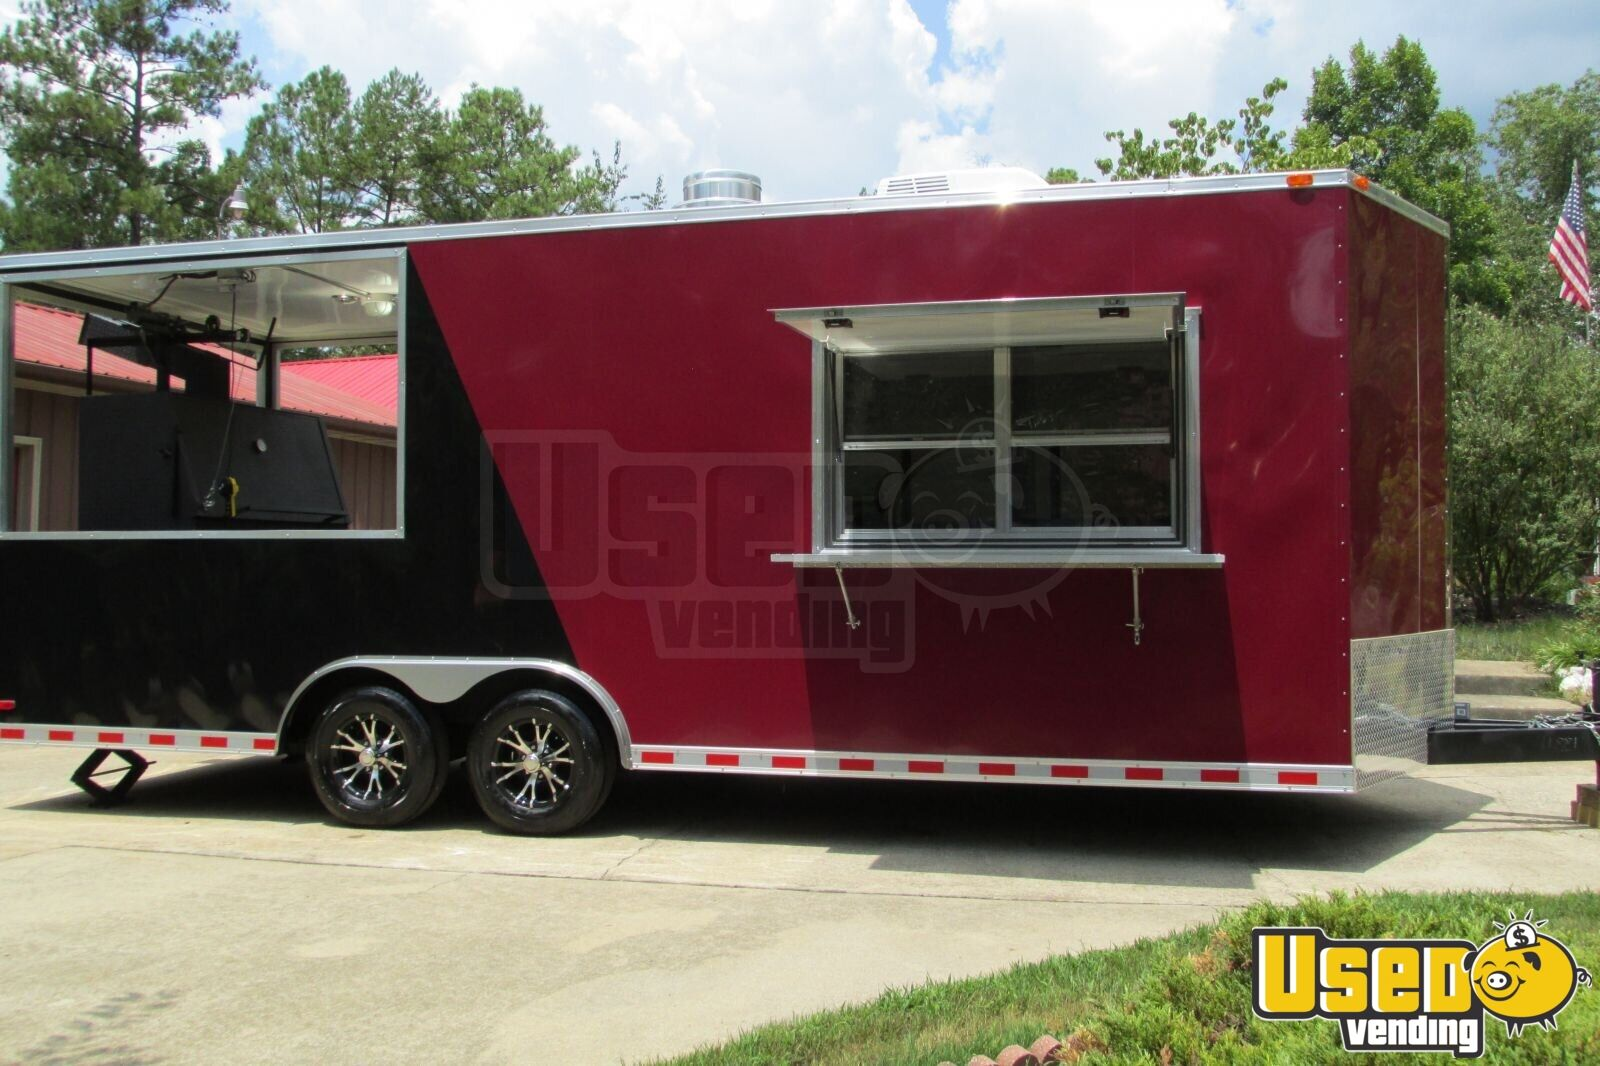 2015 - 22' x 8.5' Custom Built BBQ Porch Concession Trailer - 2